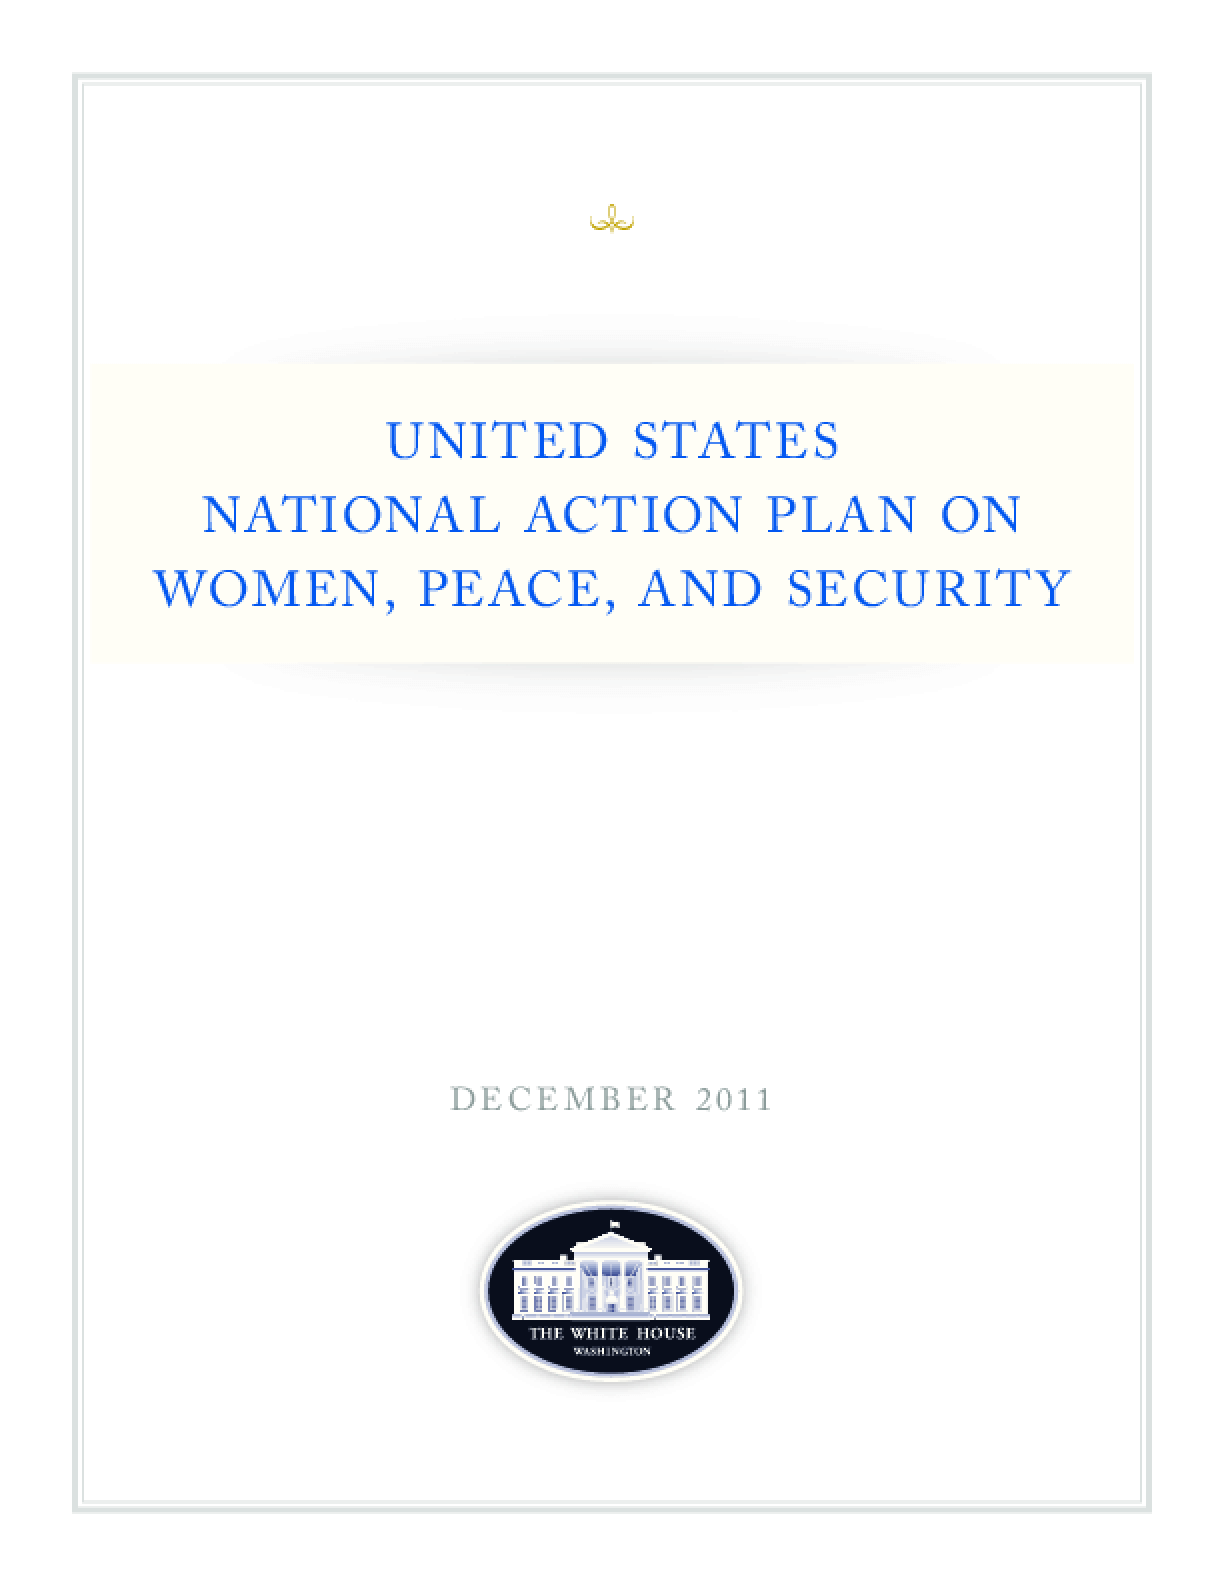 United States National Action Plan on Women, Peace and Security